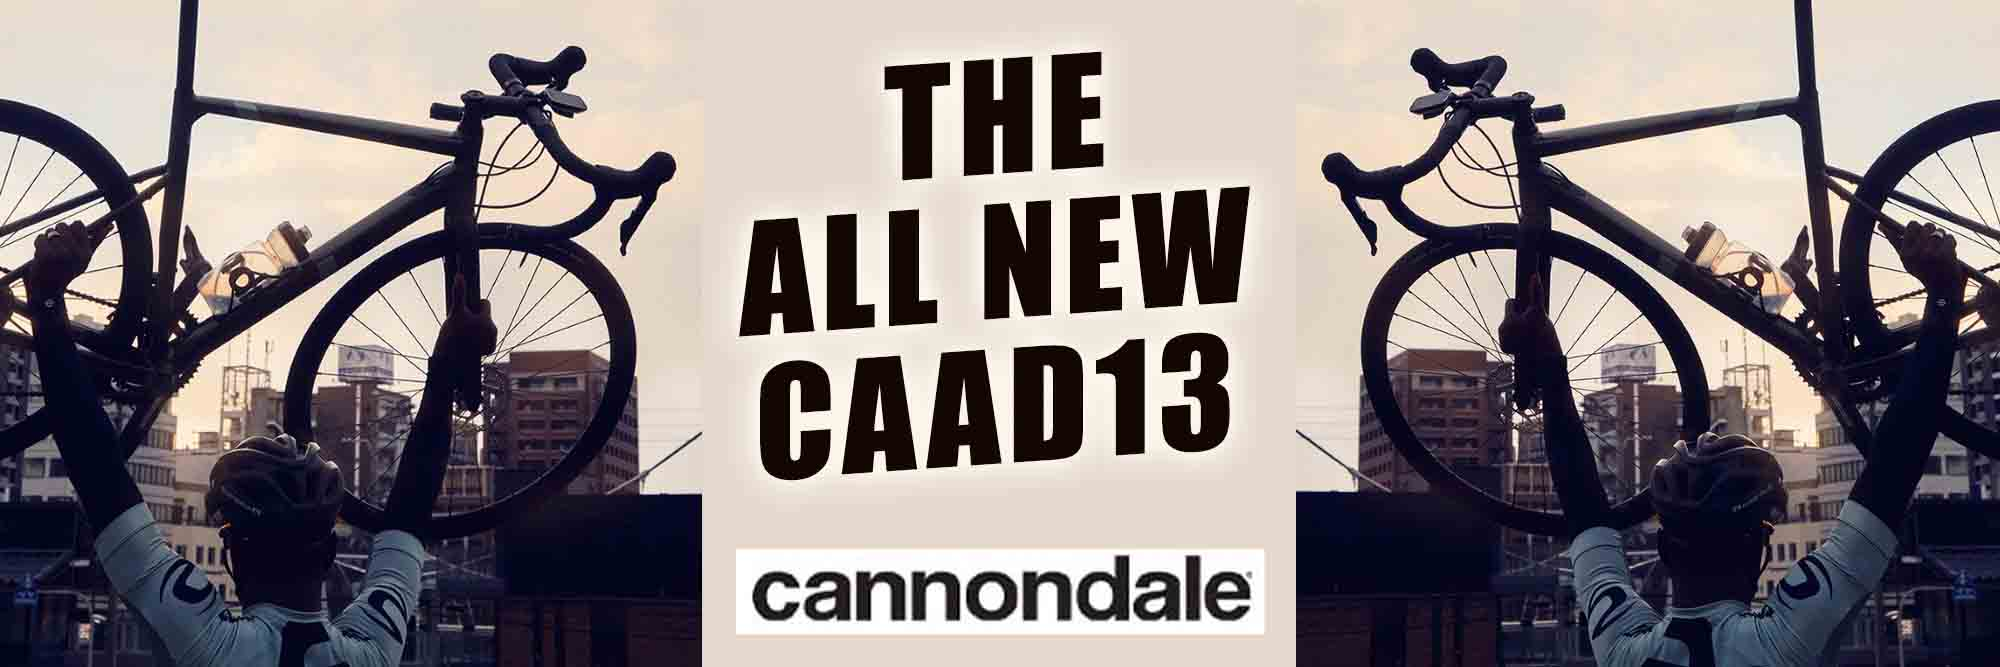 The All New Cannondale CAAD13